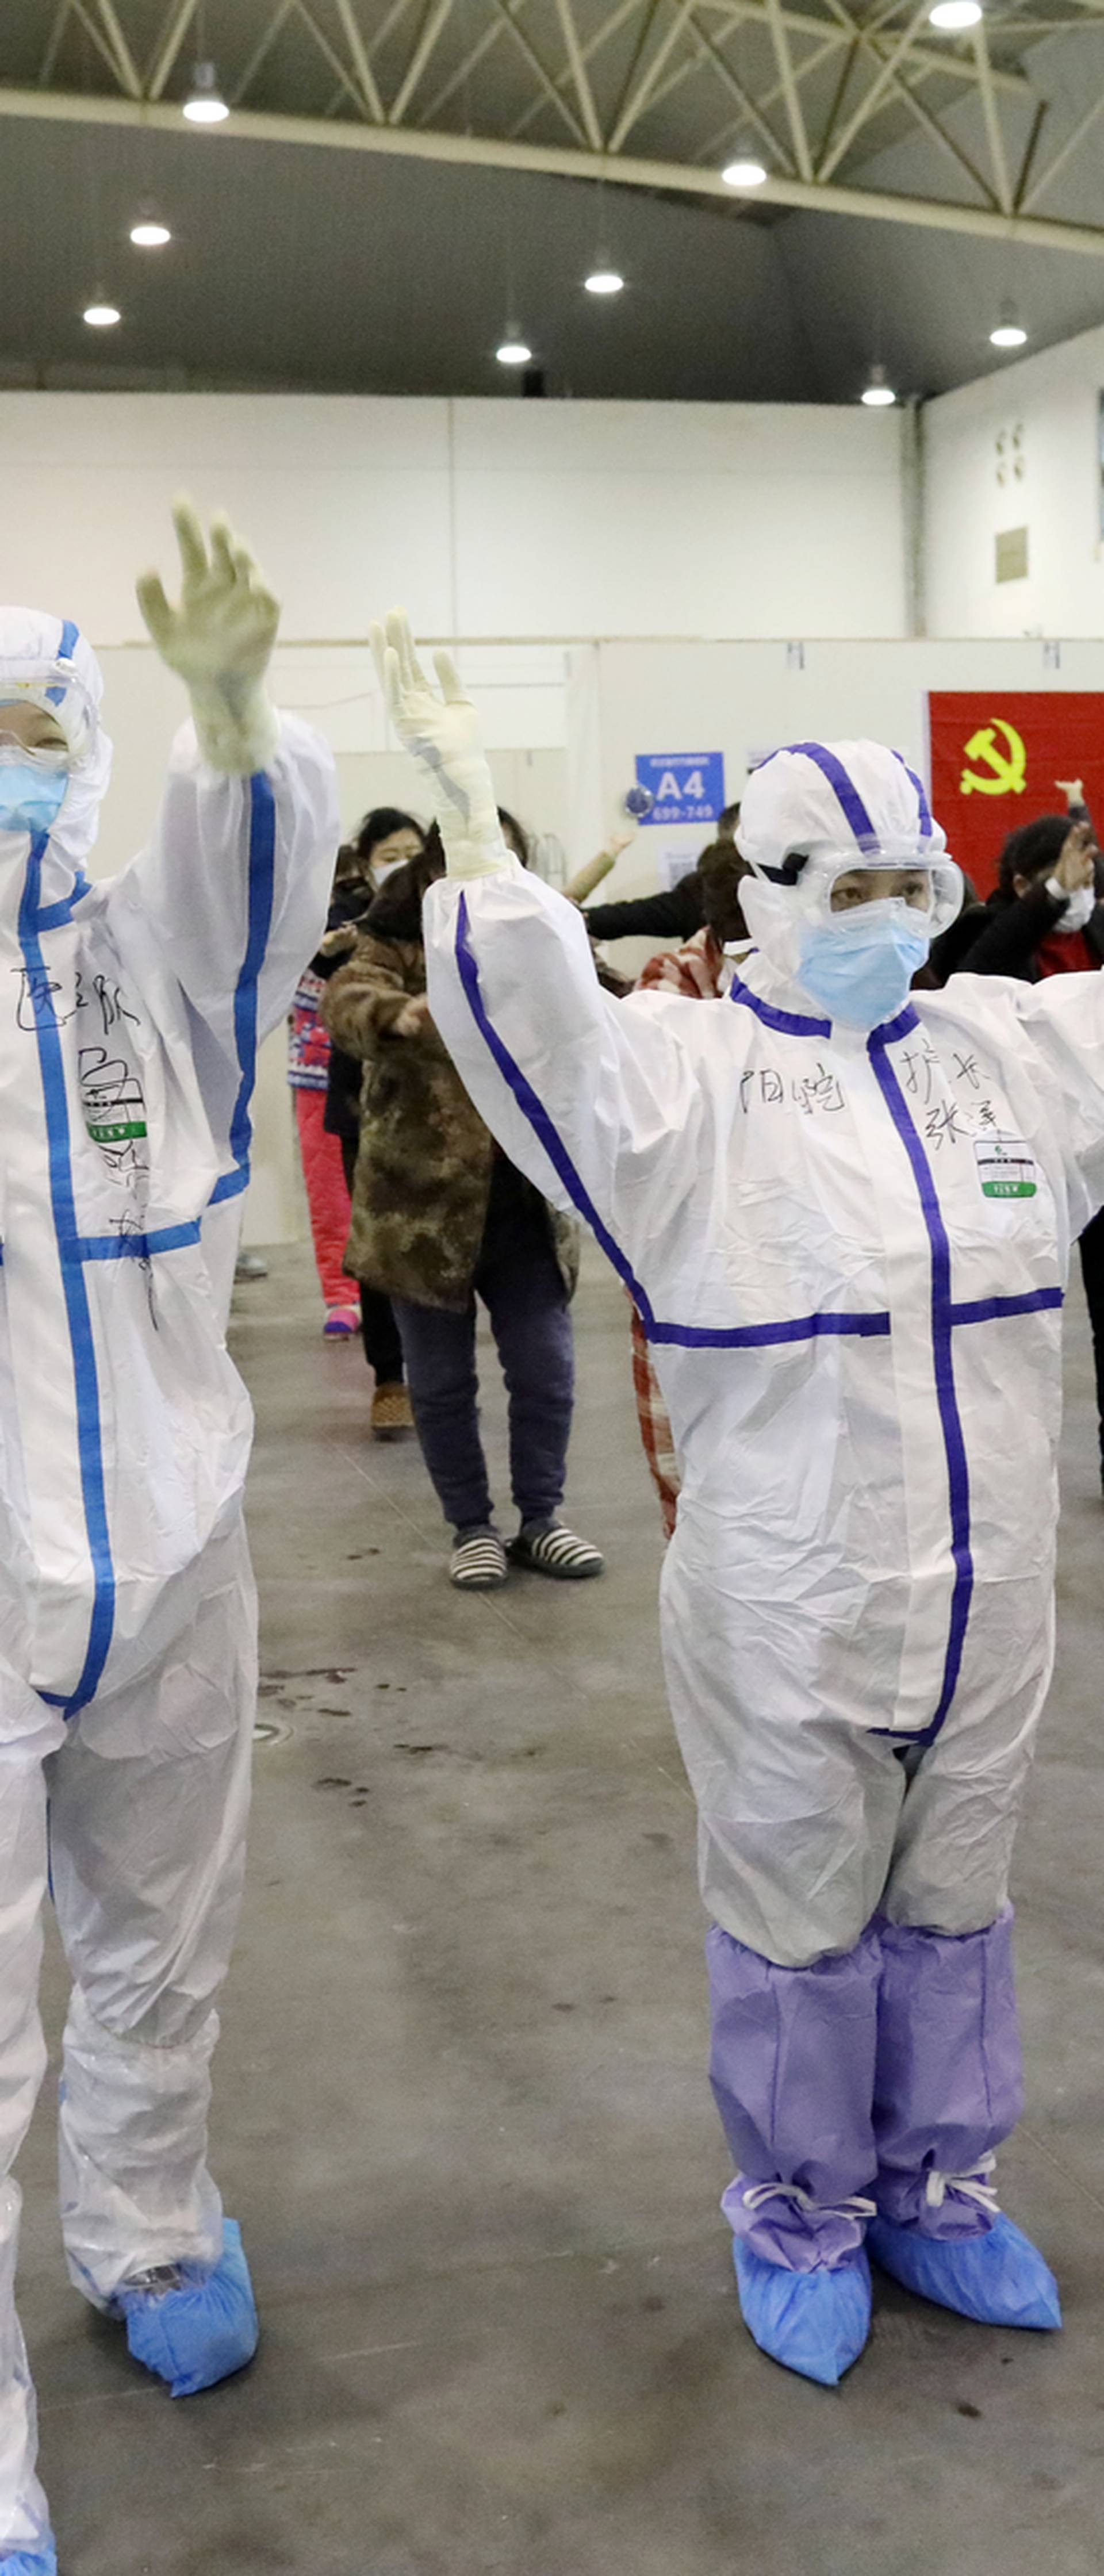 Medical workers in protective suits dance with patients inside the Wuhan Parlor Convention Center that has been converted into a makeshift hospital following an outbreak of the novel coronavirus